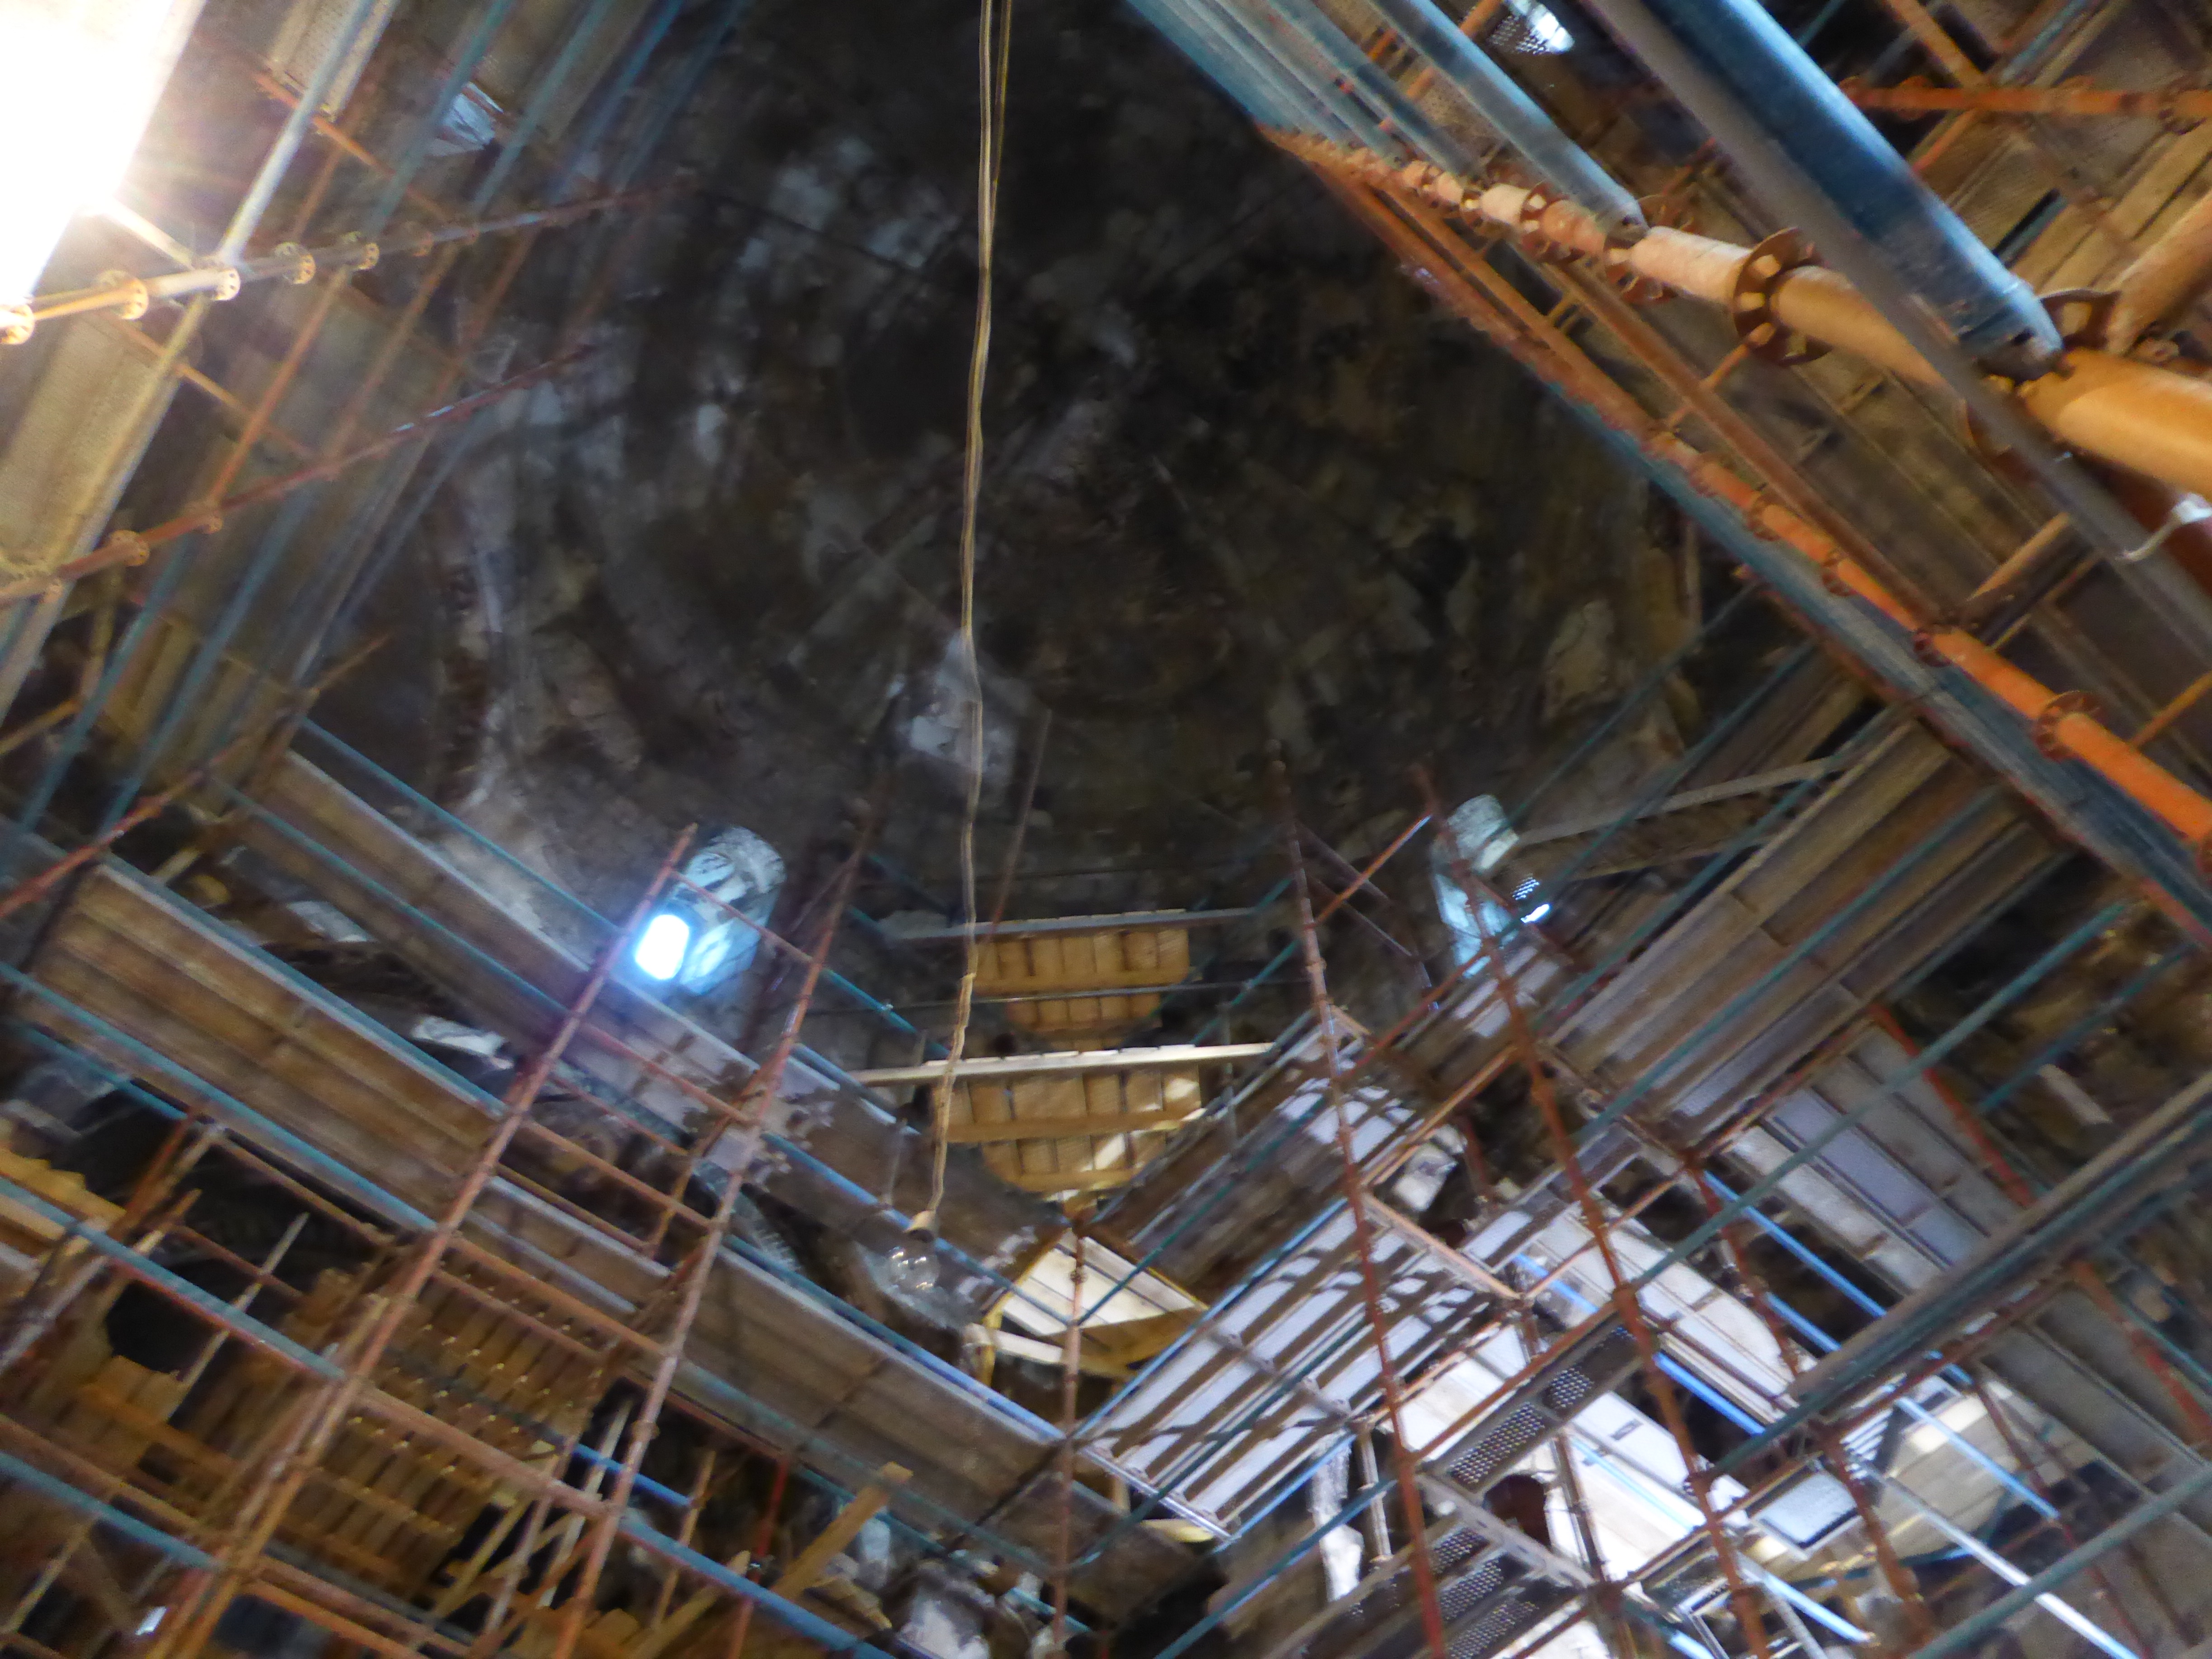 interior us was history to vermont of church necessary repairs episcopal about complete floor christ required ceiling scaffolding img